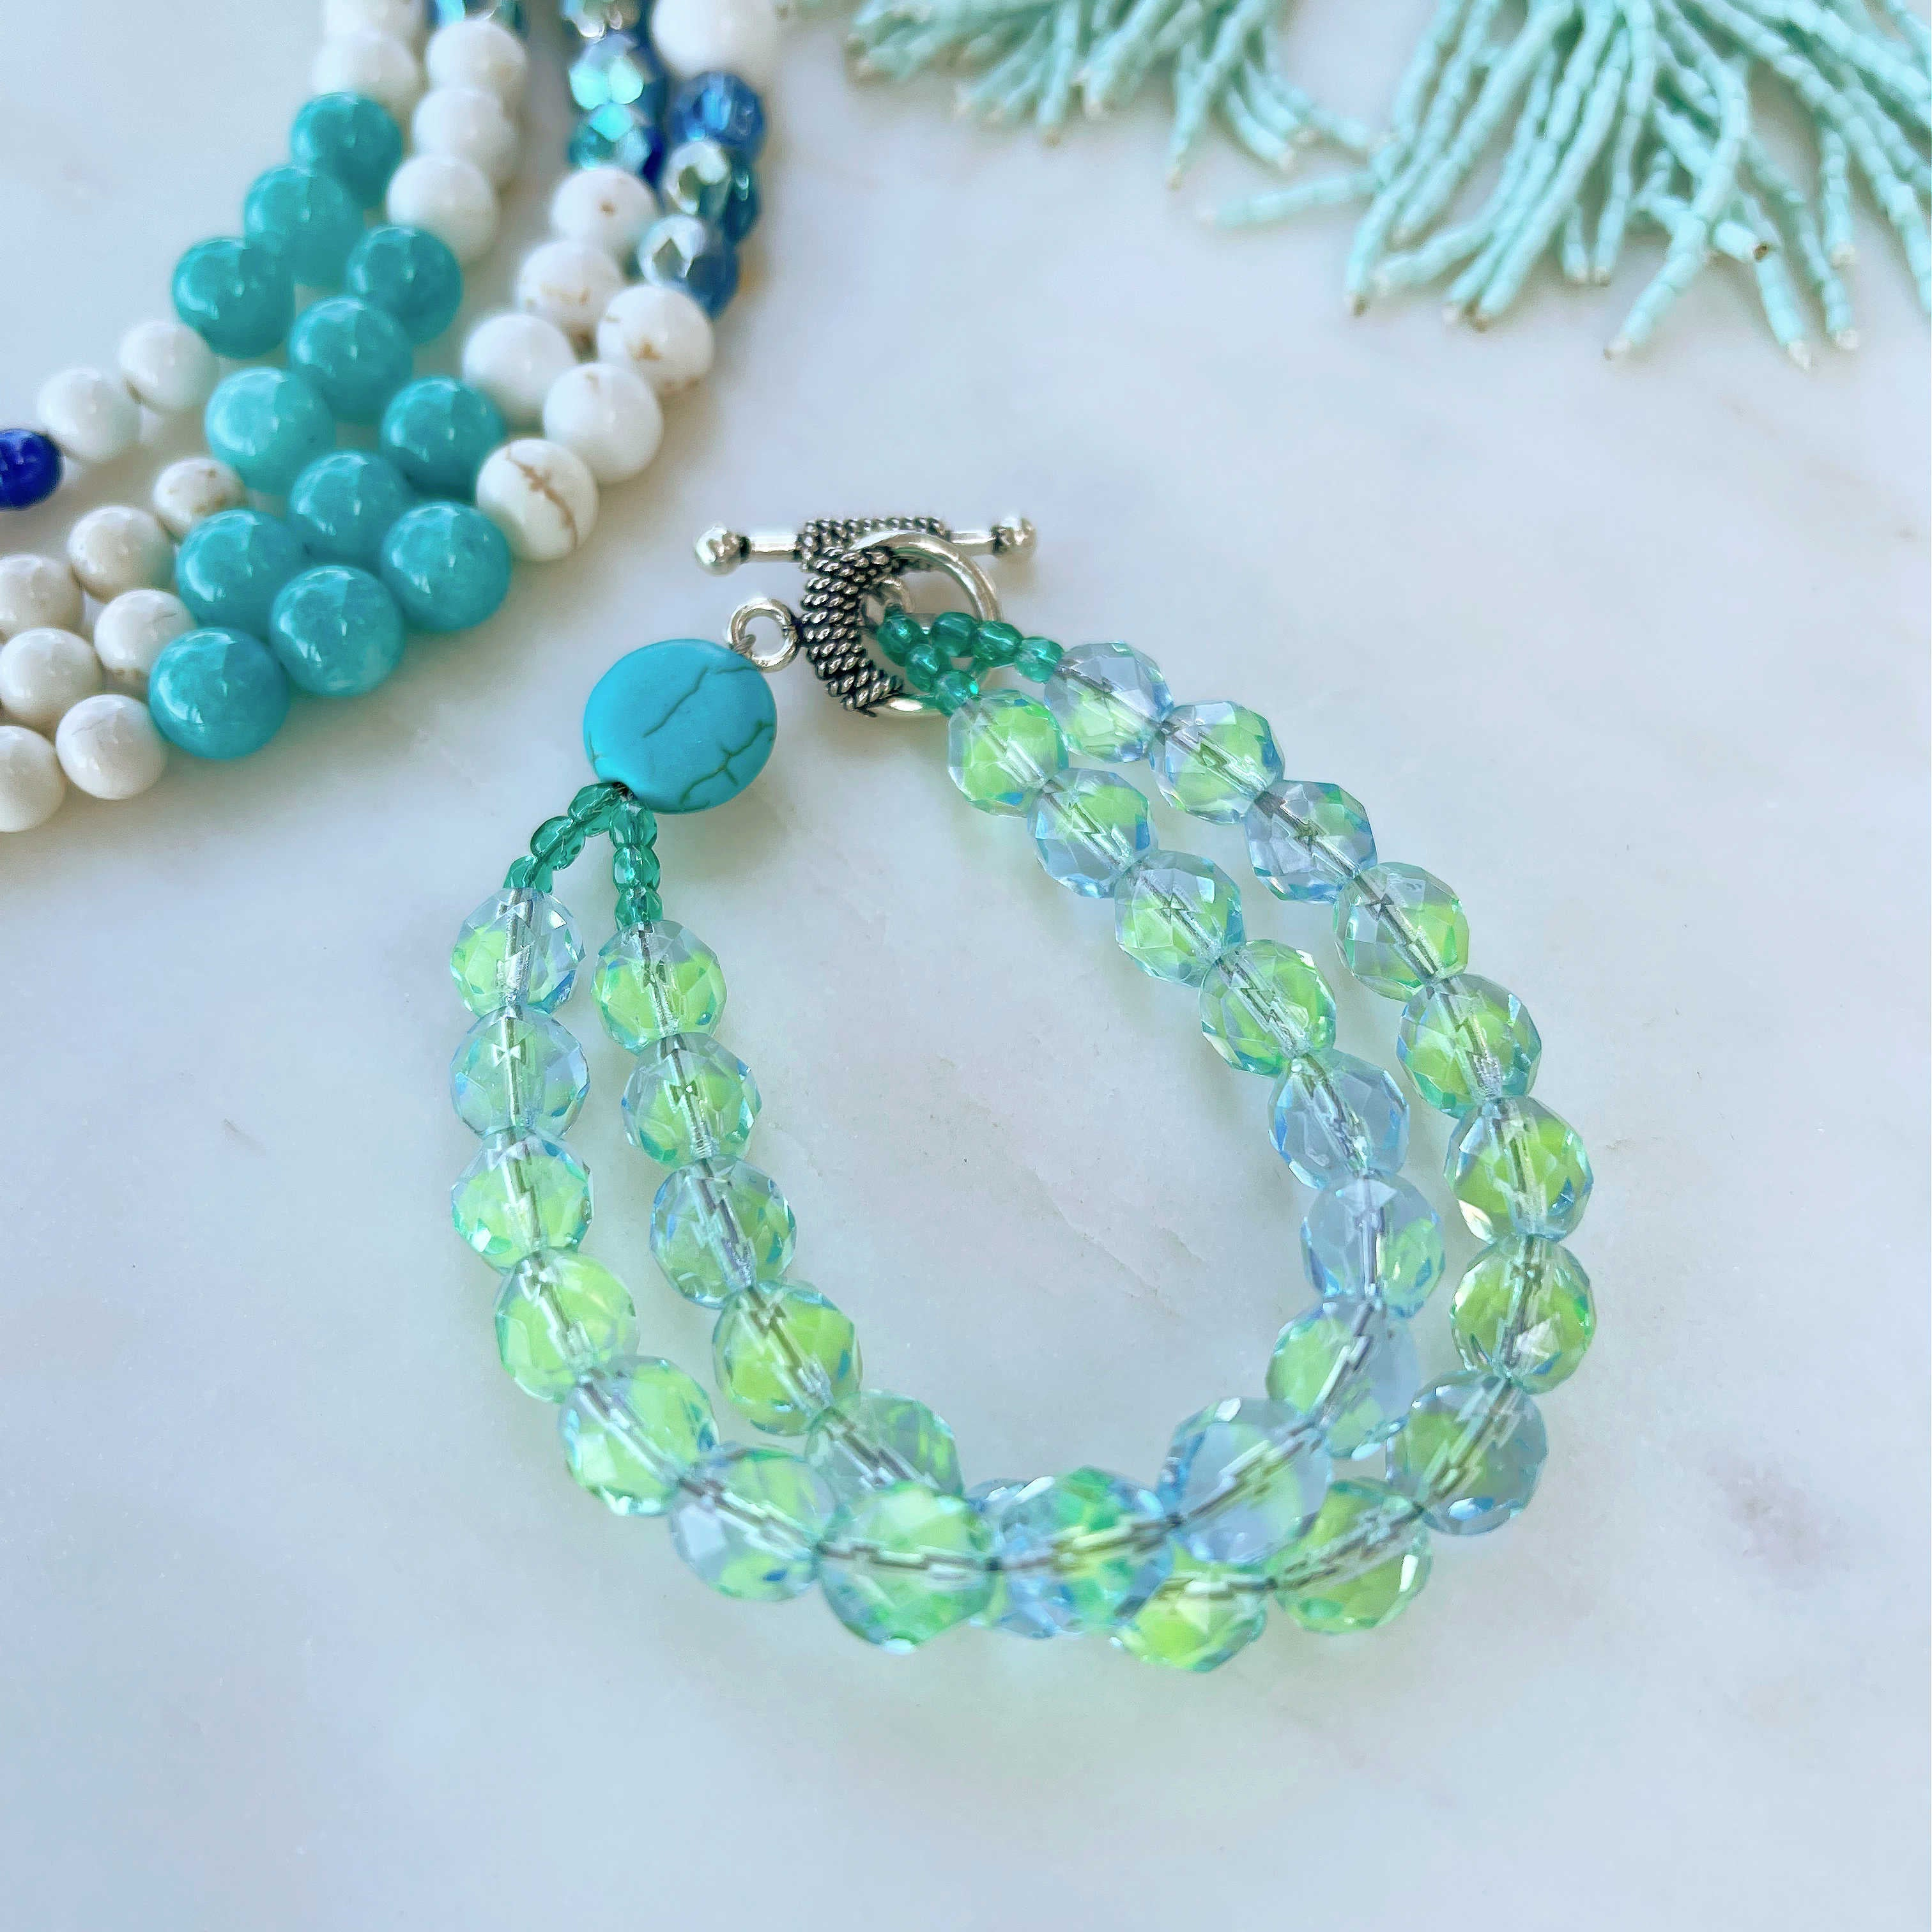 Czech glass bracelet with blue and turquoise beads